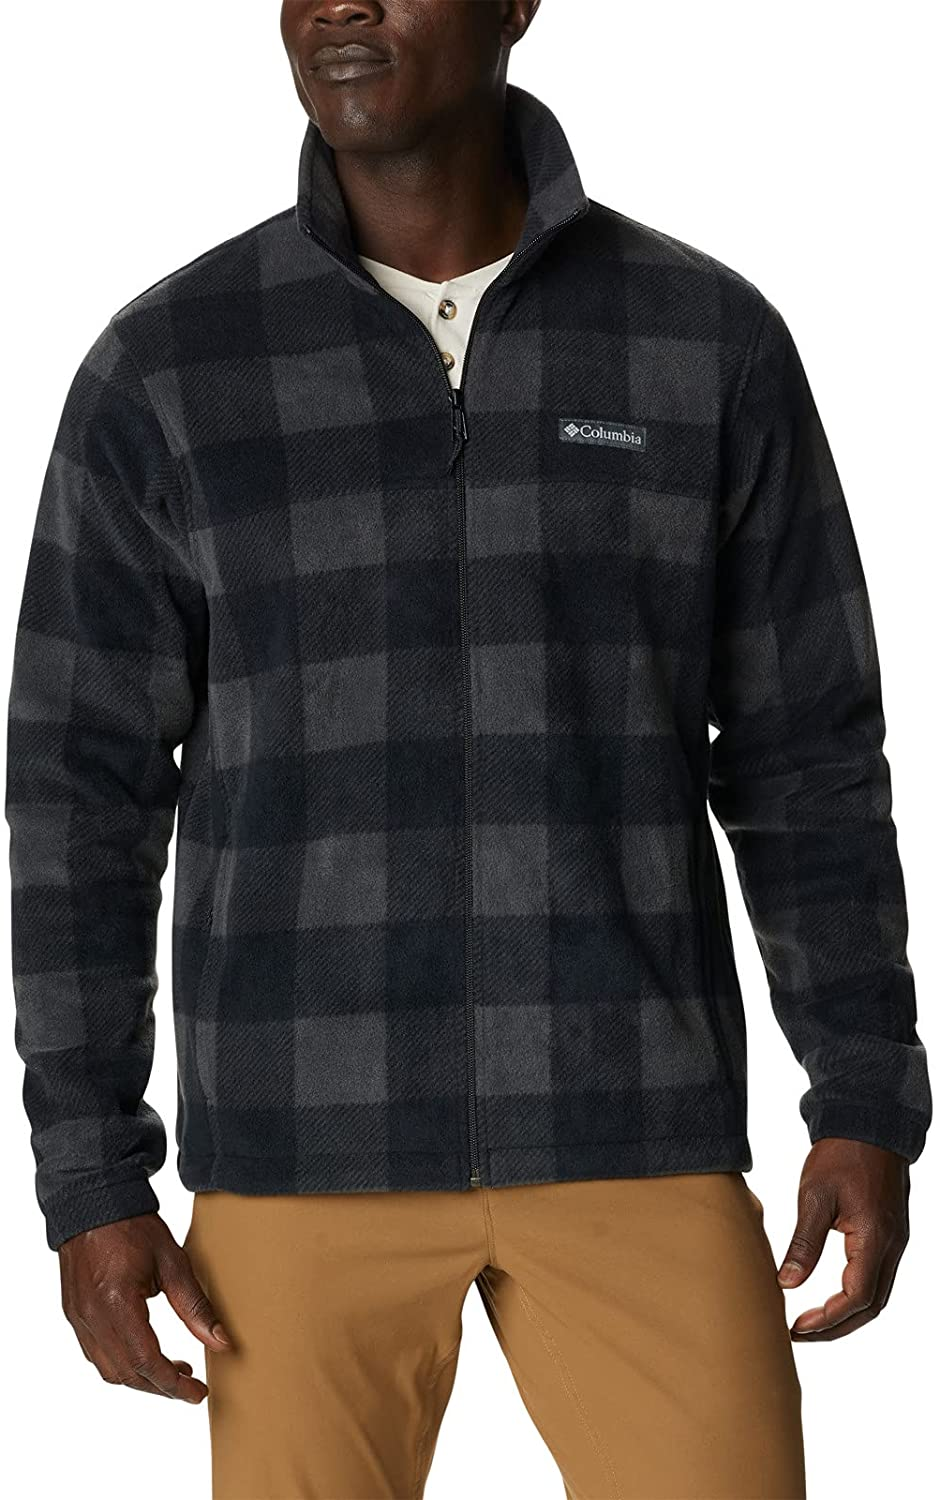 Outlet sale feature Columbia Men's Steens Printed Mountain Jacket Gifts